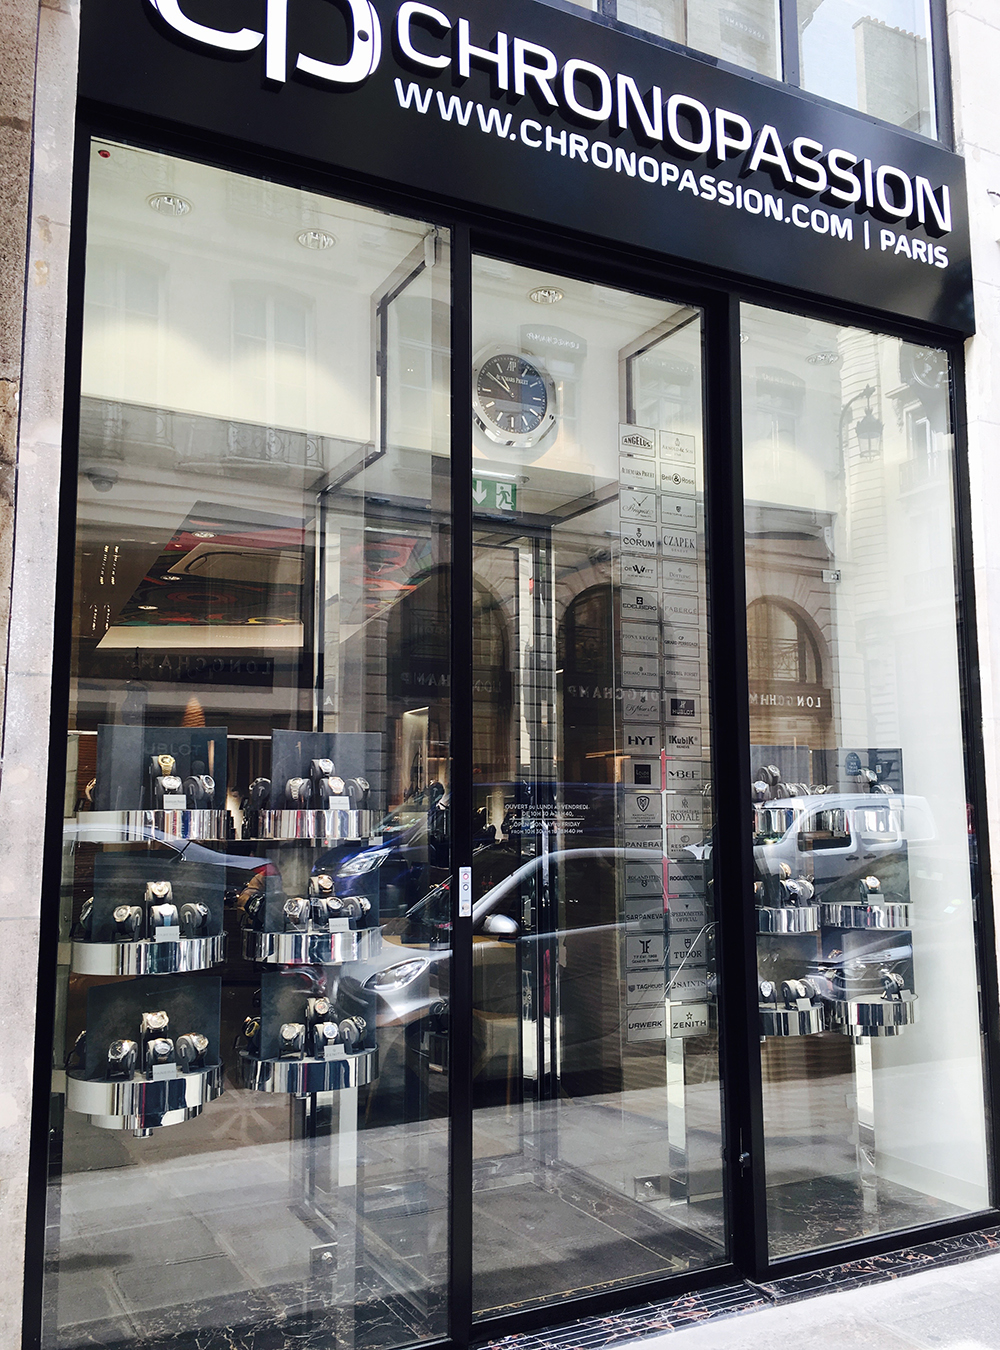 The new Chronopassion boutique at the heart of Paris will turn heads with carousel display cabinets.